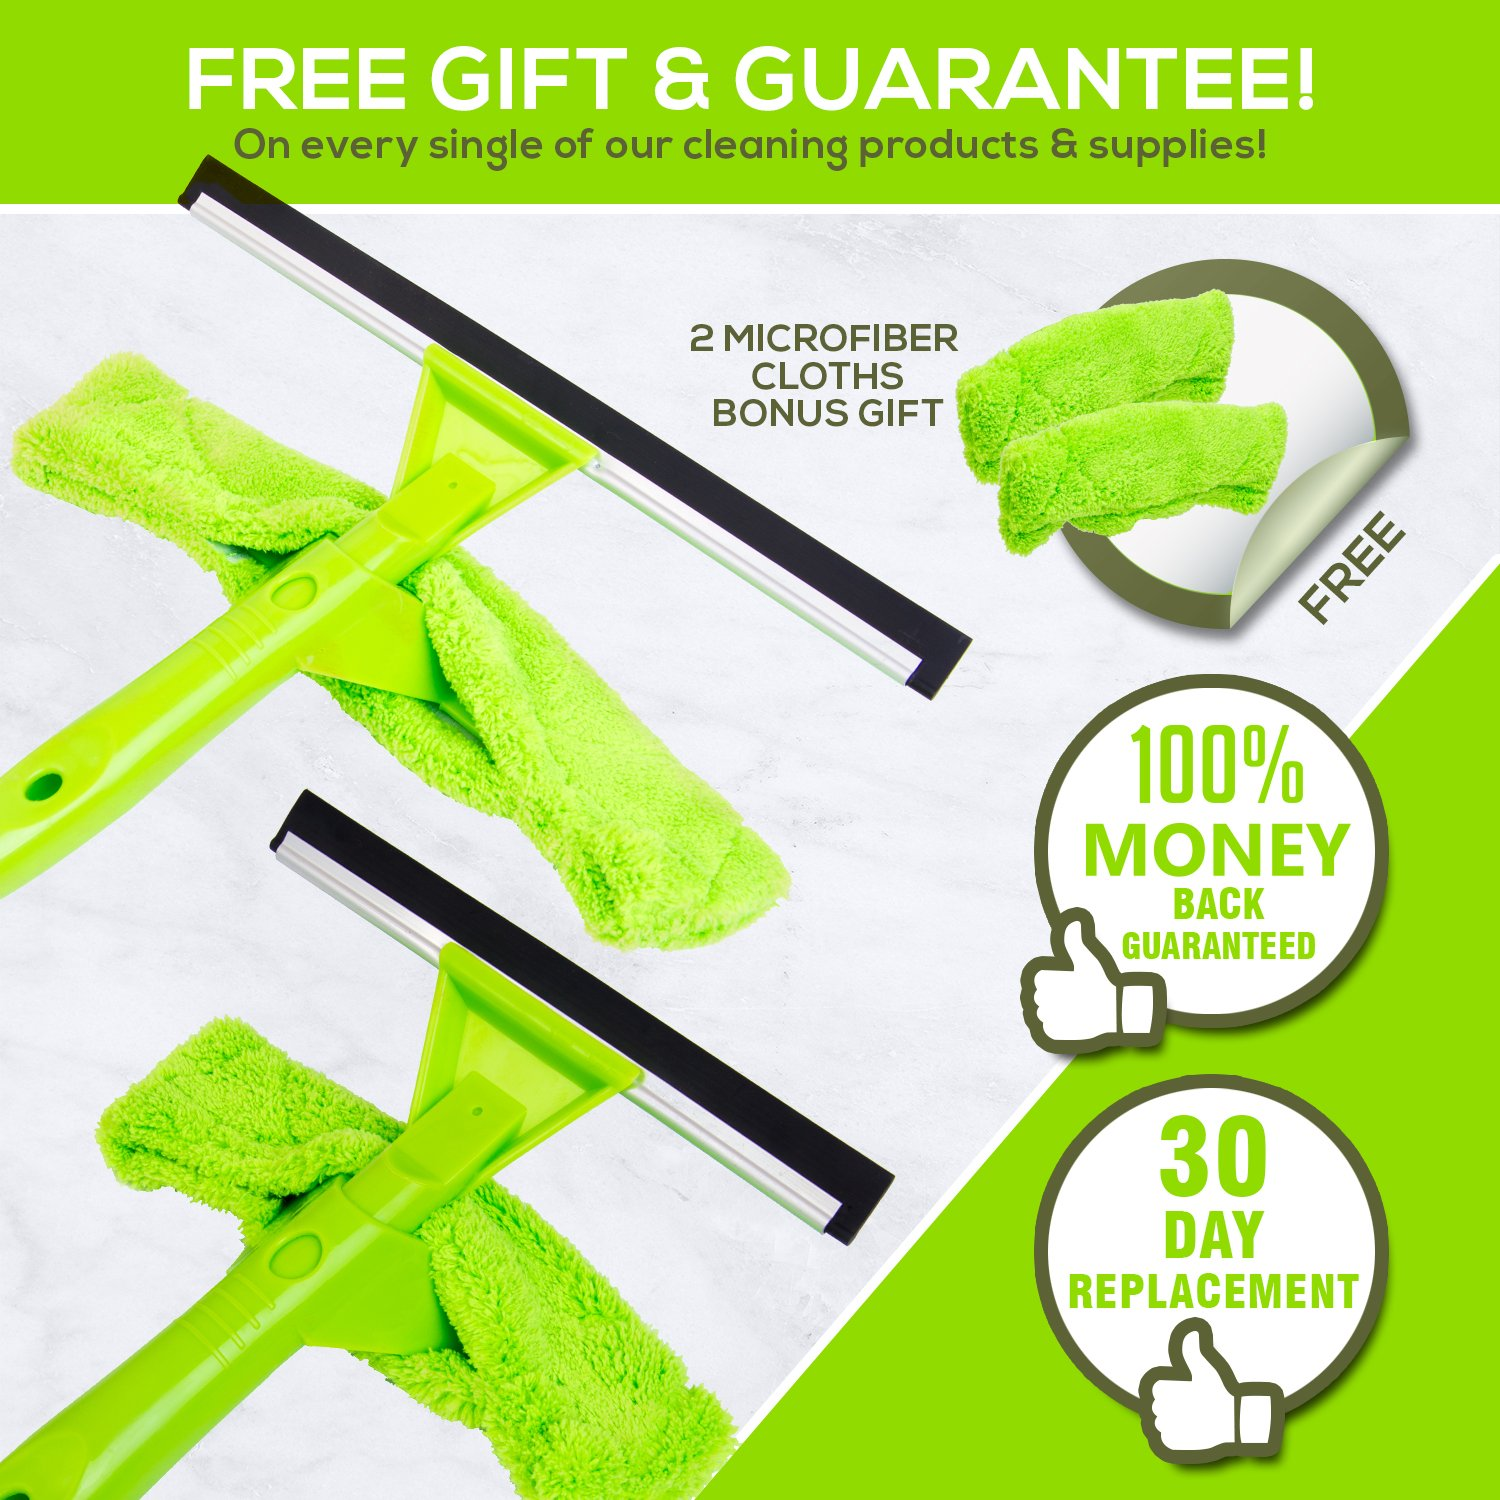 NeverEnding Reach Squeegee Window Cleaner Kit | Shower Squeegee, High Window Cleaning Tools, Car Windshield Tool and Doors - Indoor / Outdoor Washing Equipment with Extension Pole and 4 Washer Heads by Modern Domus (Image #7)